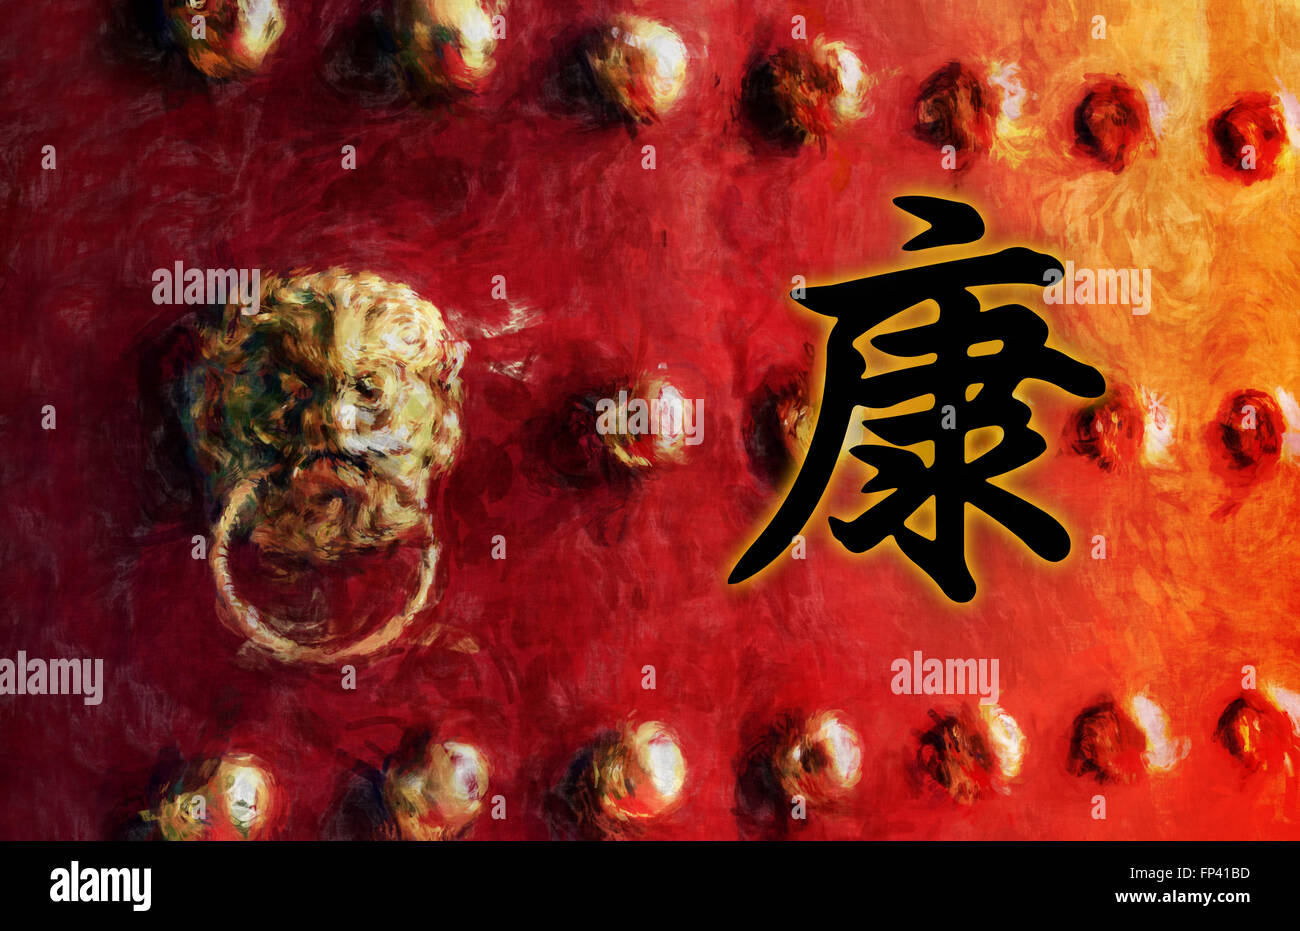 Health chinese character symbol writing as painting stock photo health chinese character symbol writing as painting biocorpaavc Gallery